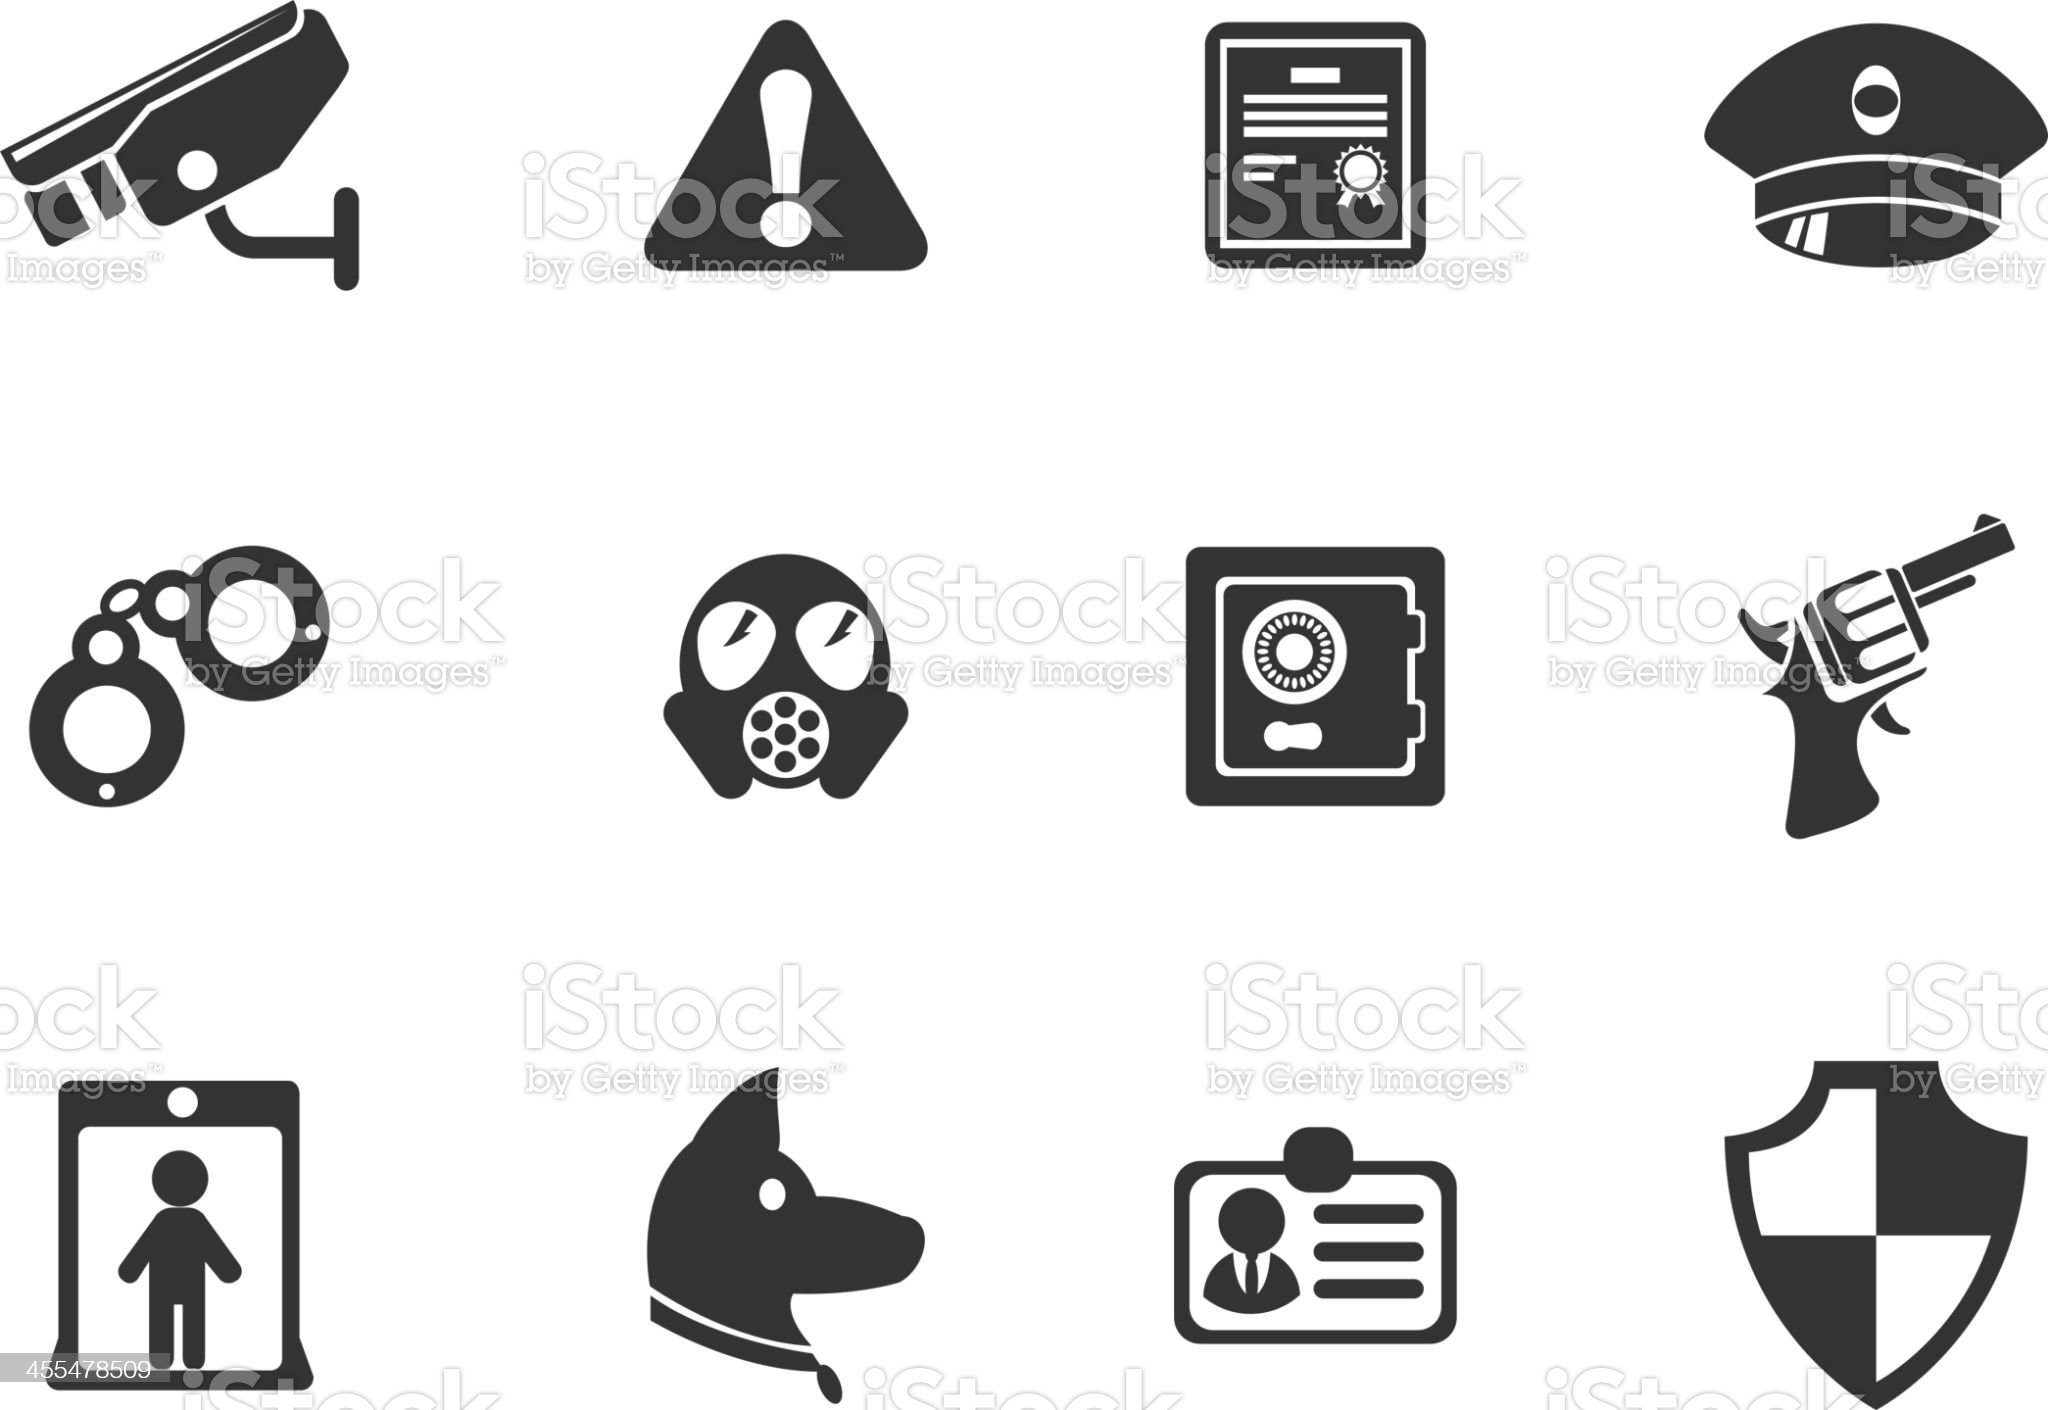 Security symbols royalty-free stock vector art